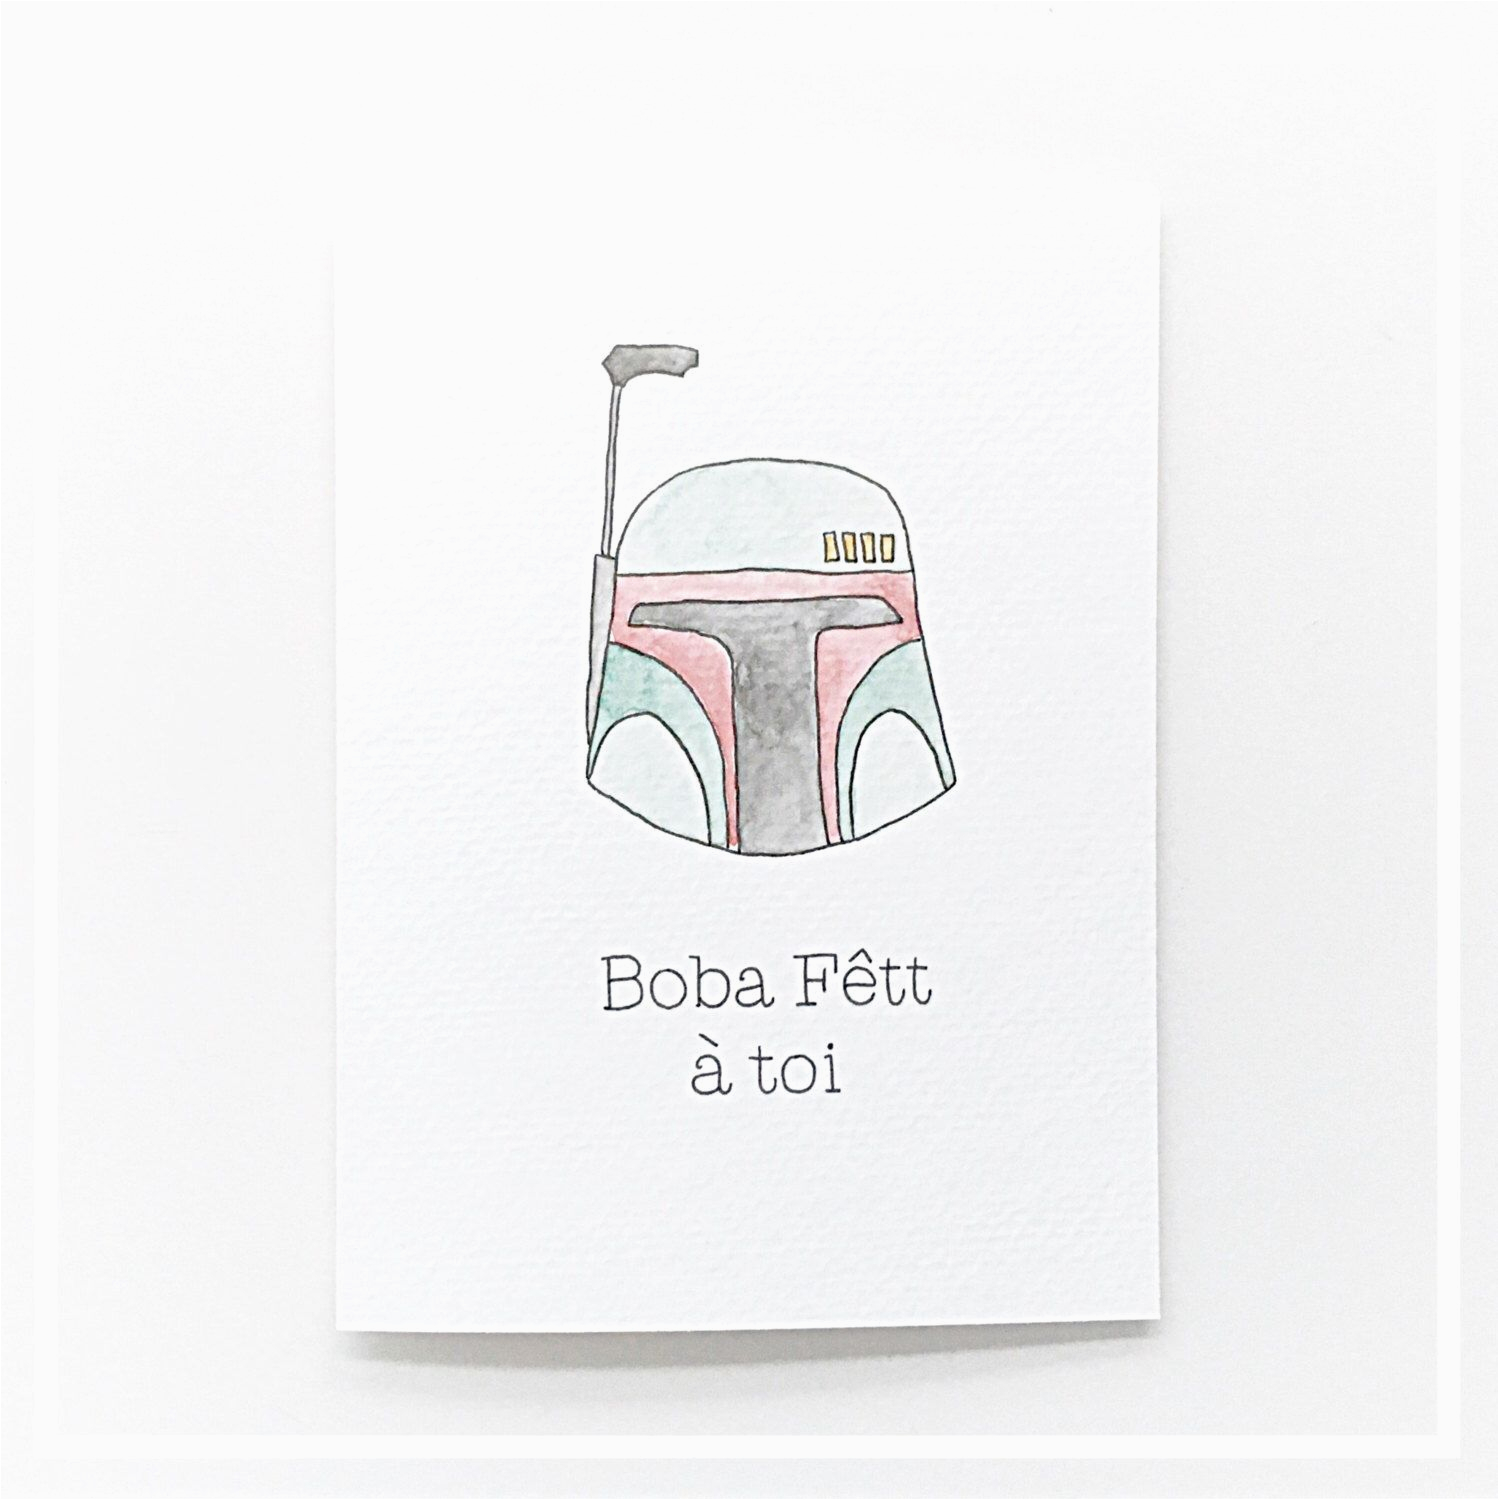 boba fett a toi punny birthday cards french card star